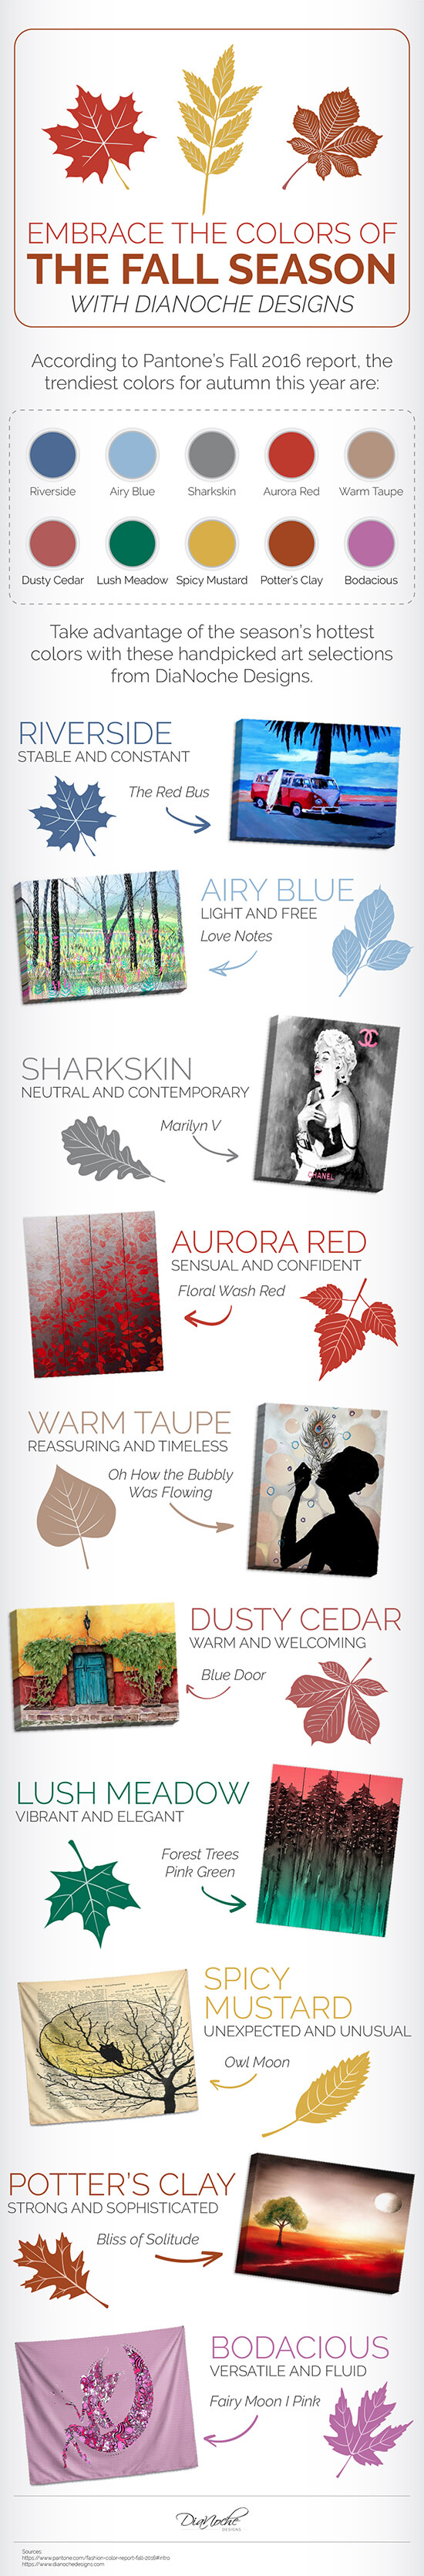 colors to integrate into your home in fall